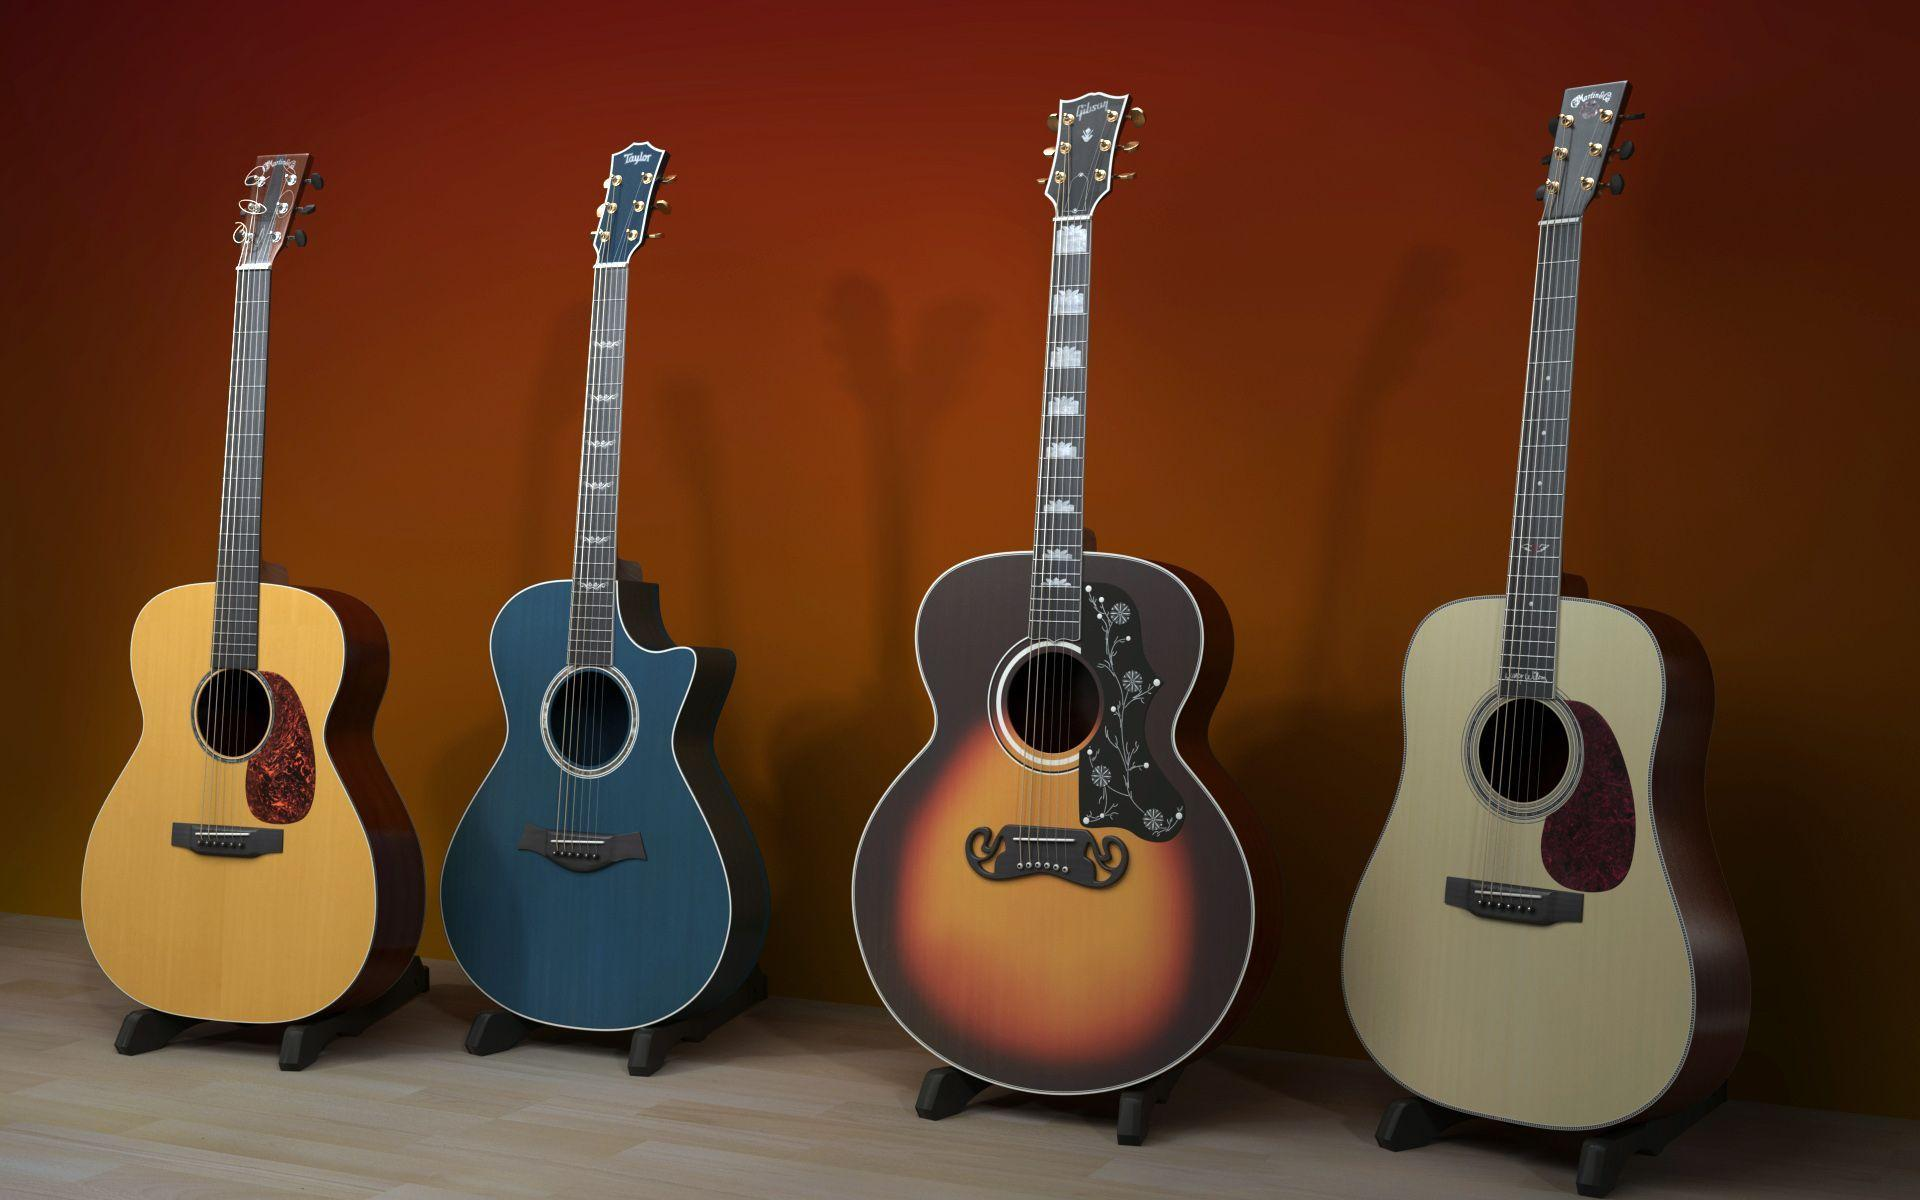 Wallpapers For > Guitar Wallpapers Hd Widescreen